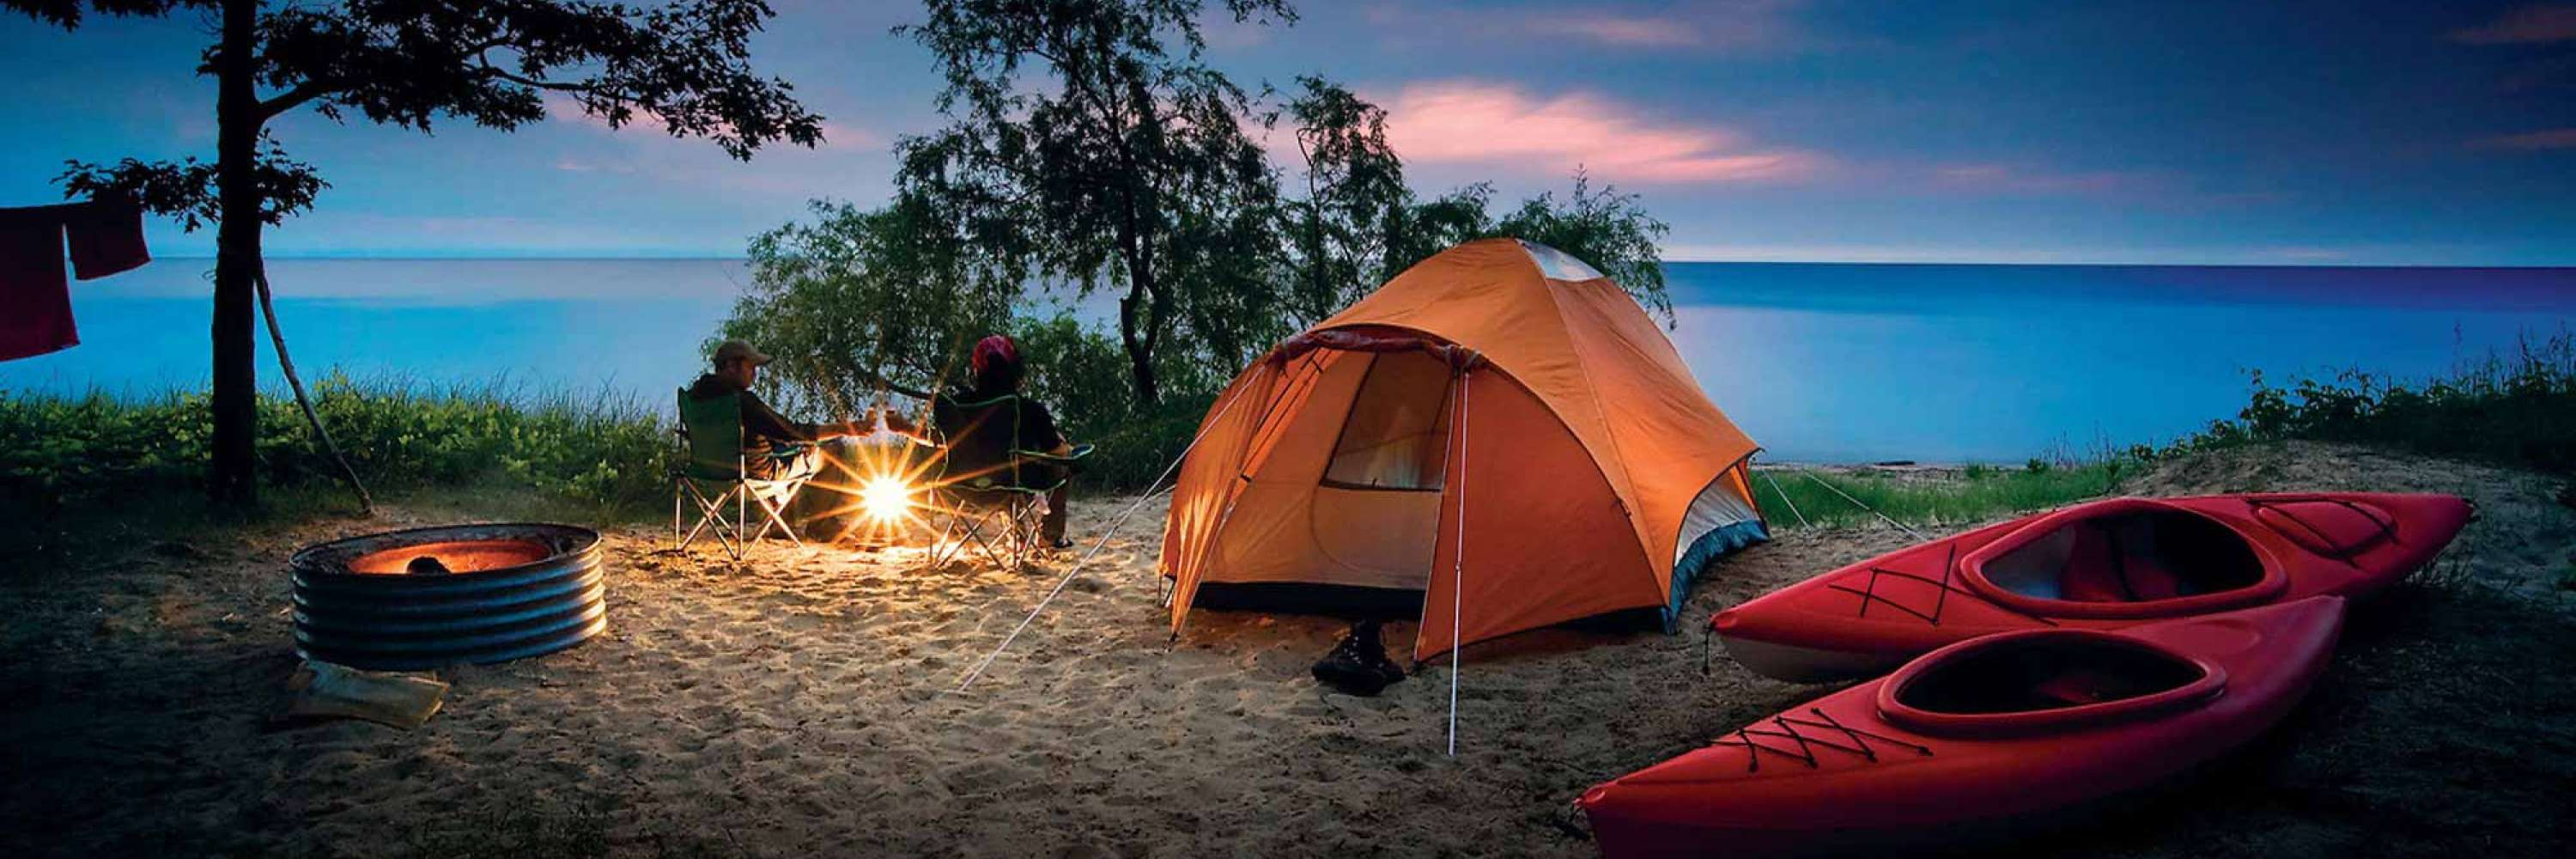 Full hookup campgrounds in northern michigan